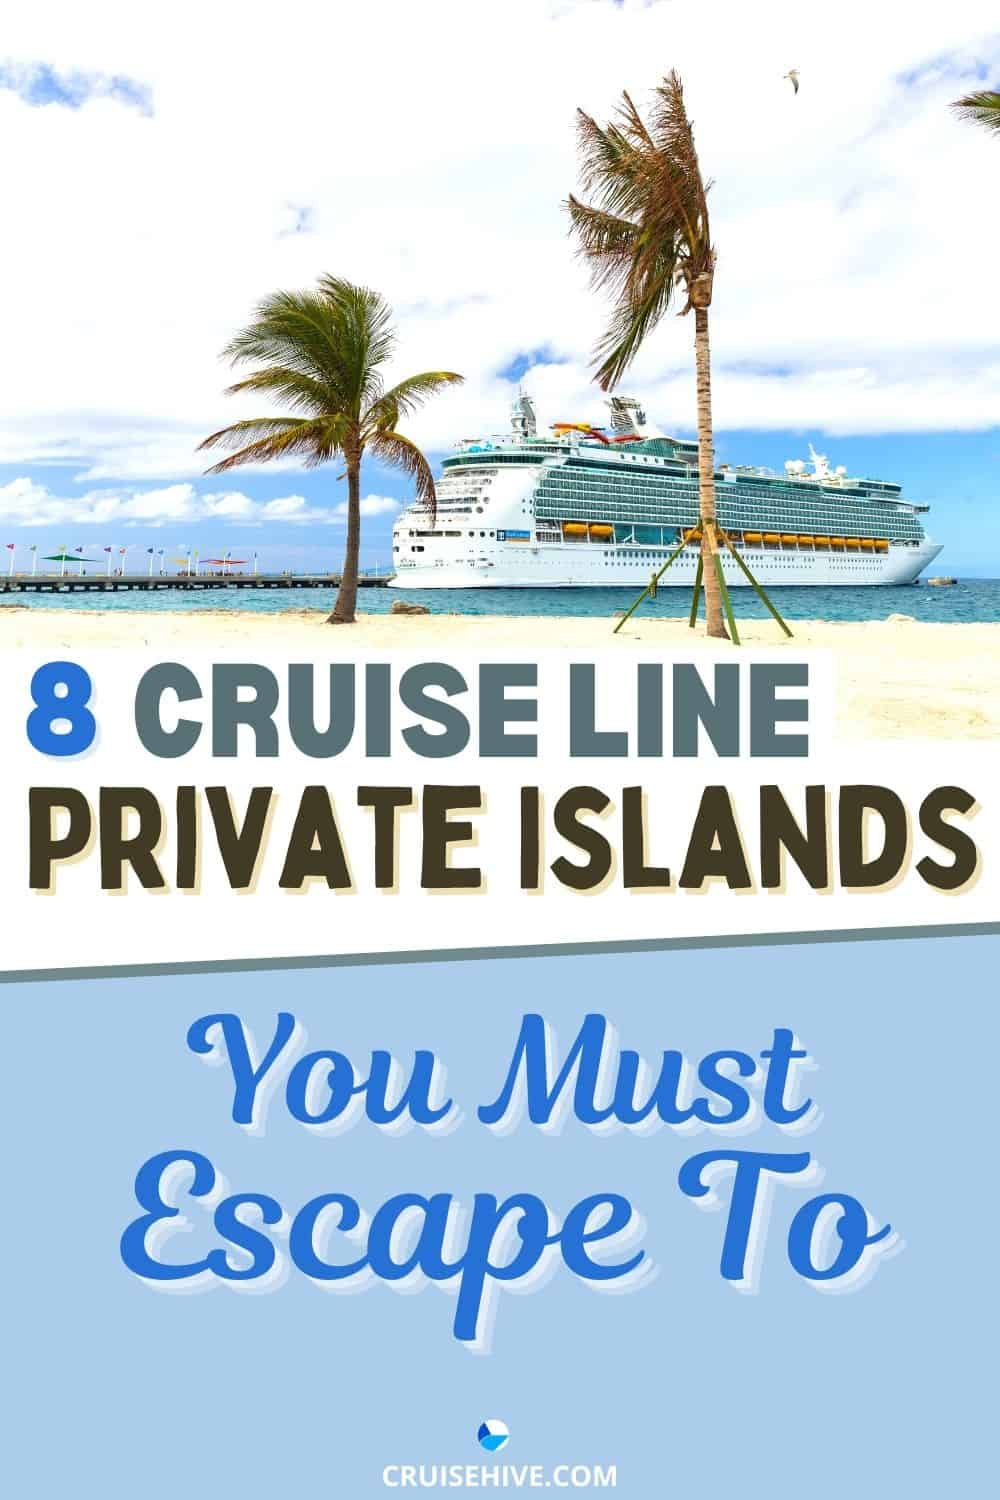 Cruise Line Private Islands